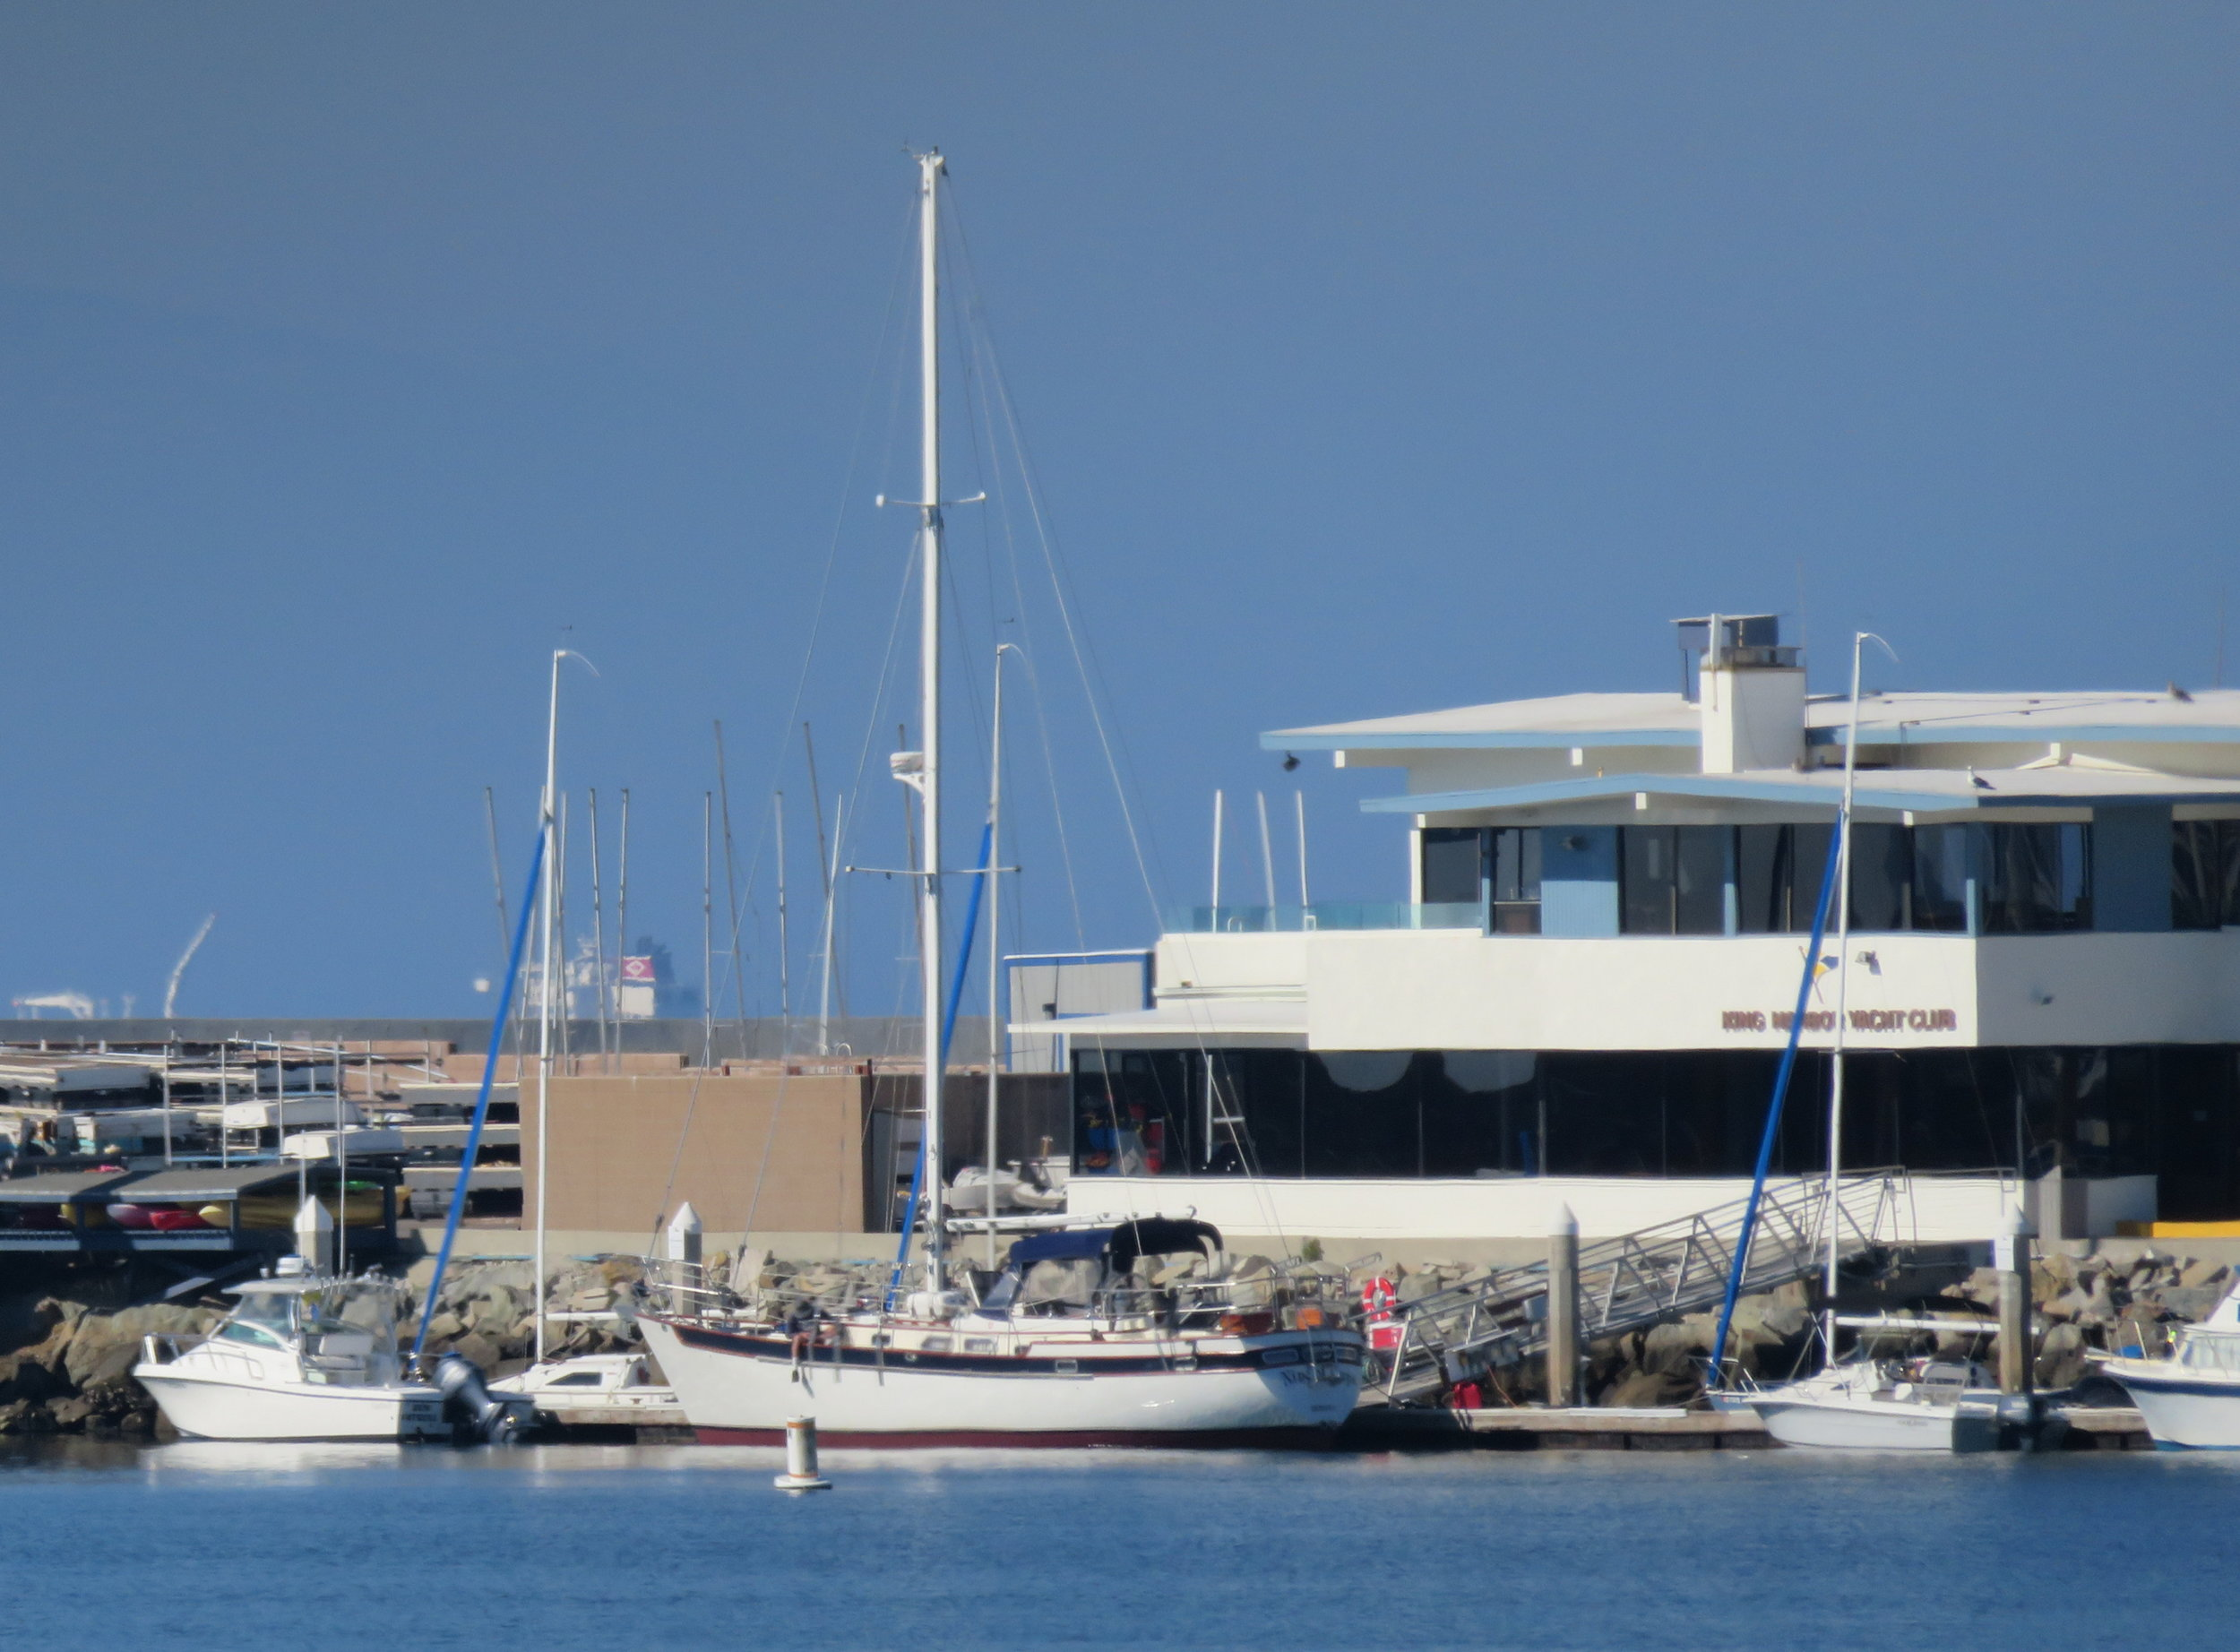 Cups was looking fine docked at the King Harbor Yacht Club